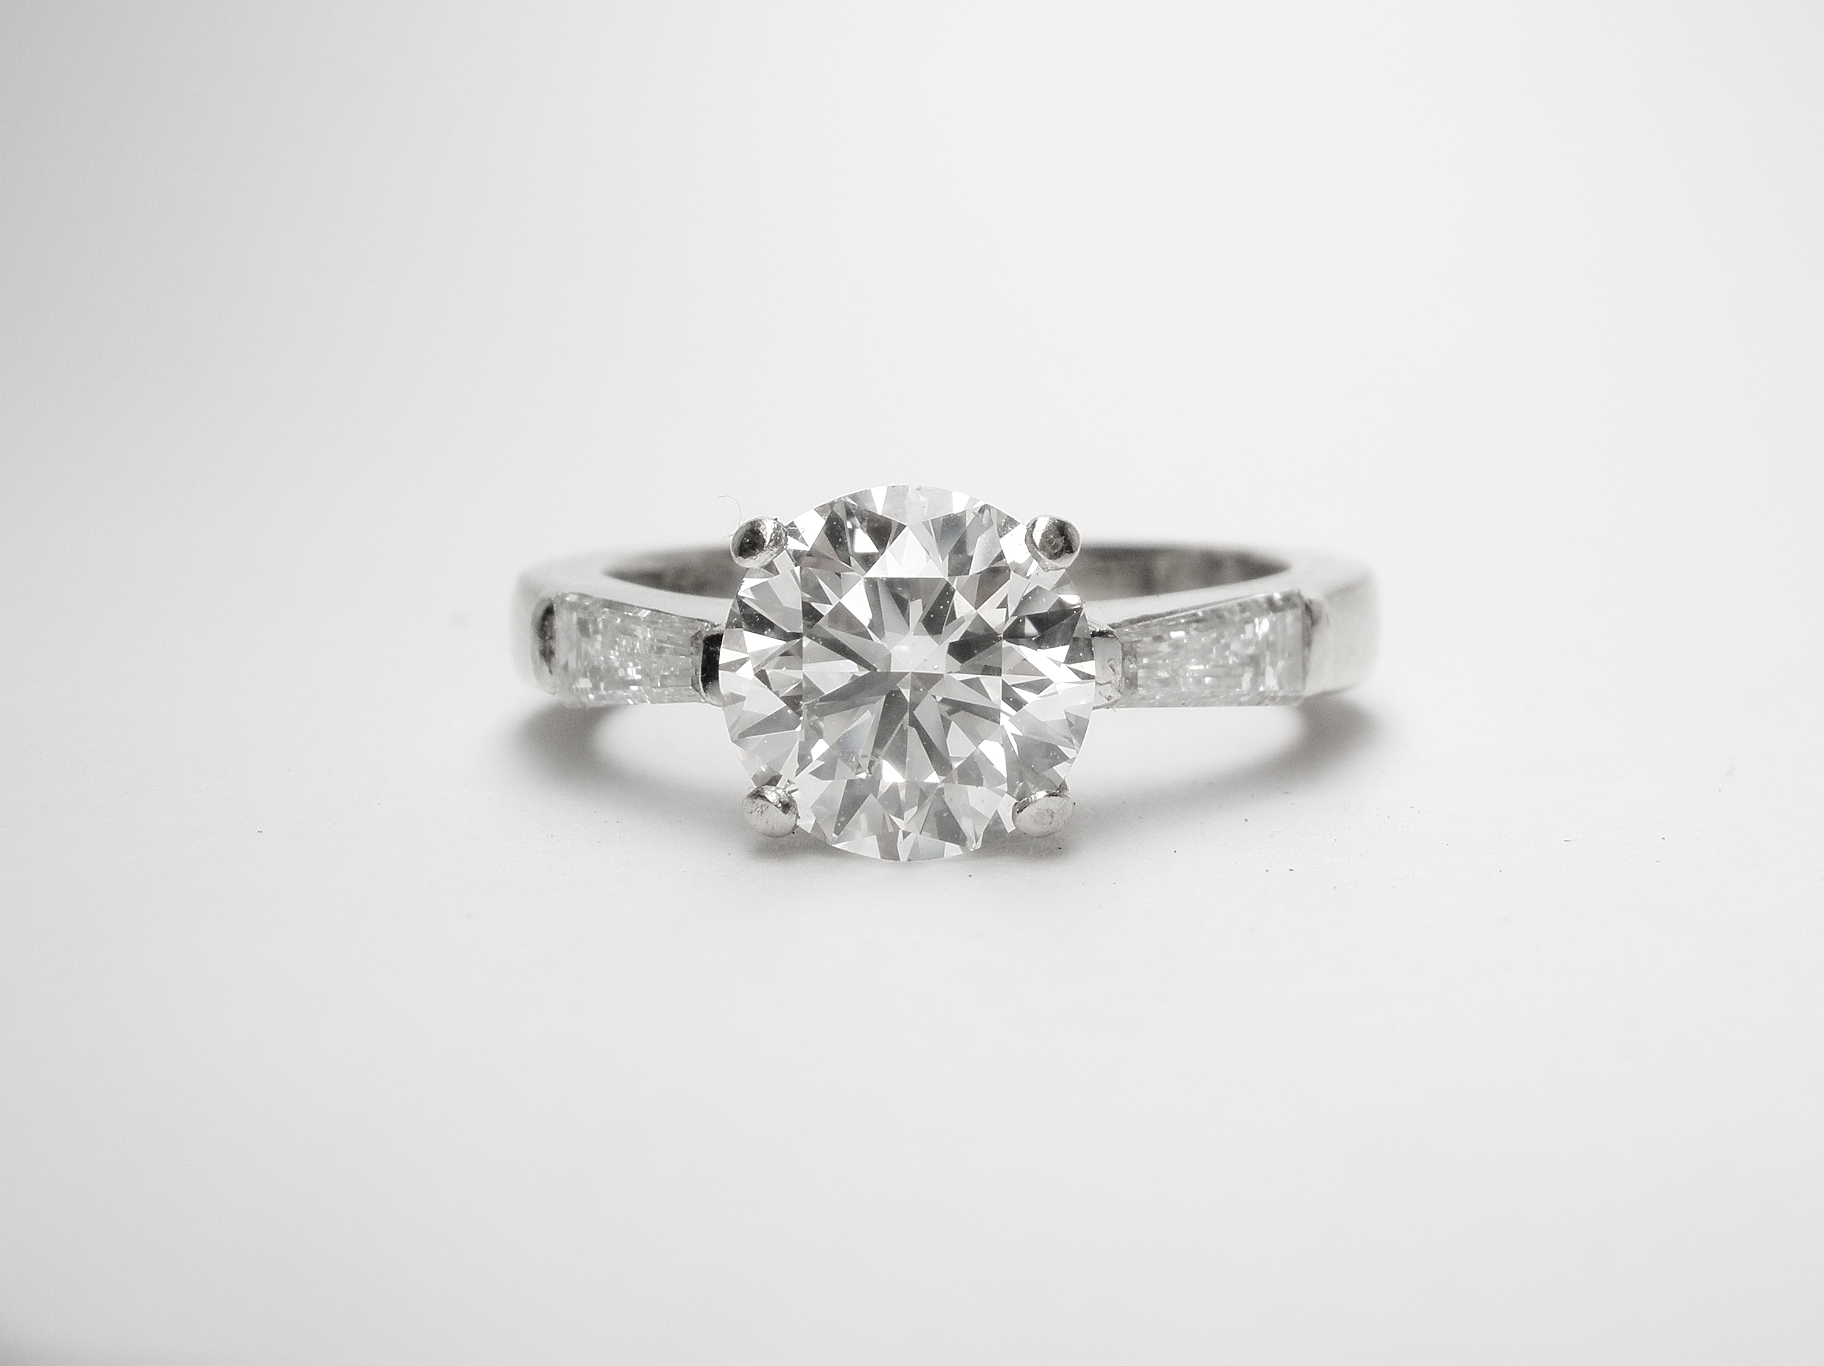 Before A single stone 1.50cts. round brilliant cut diamond ring with tapered baguette shoulders set in 18ct. white gold.